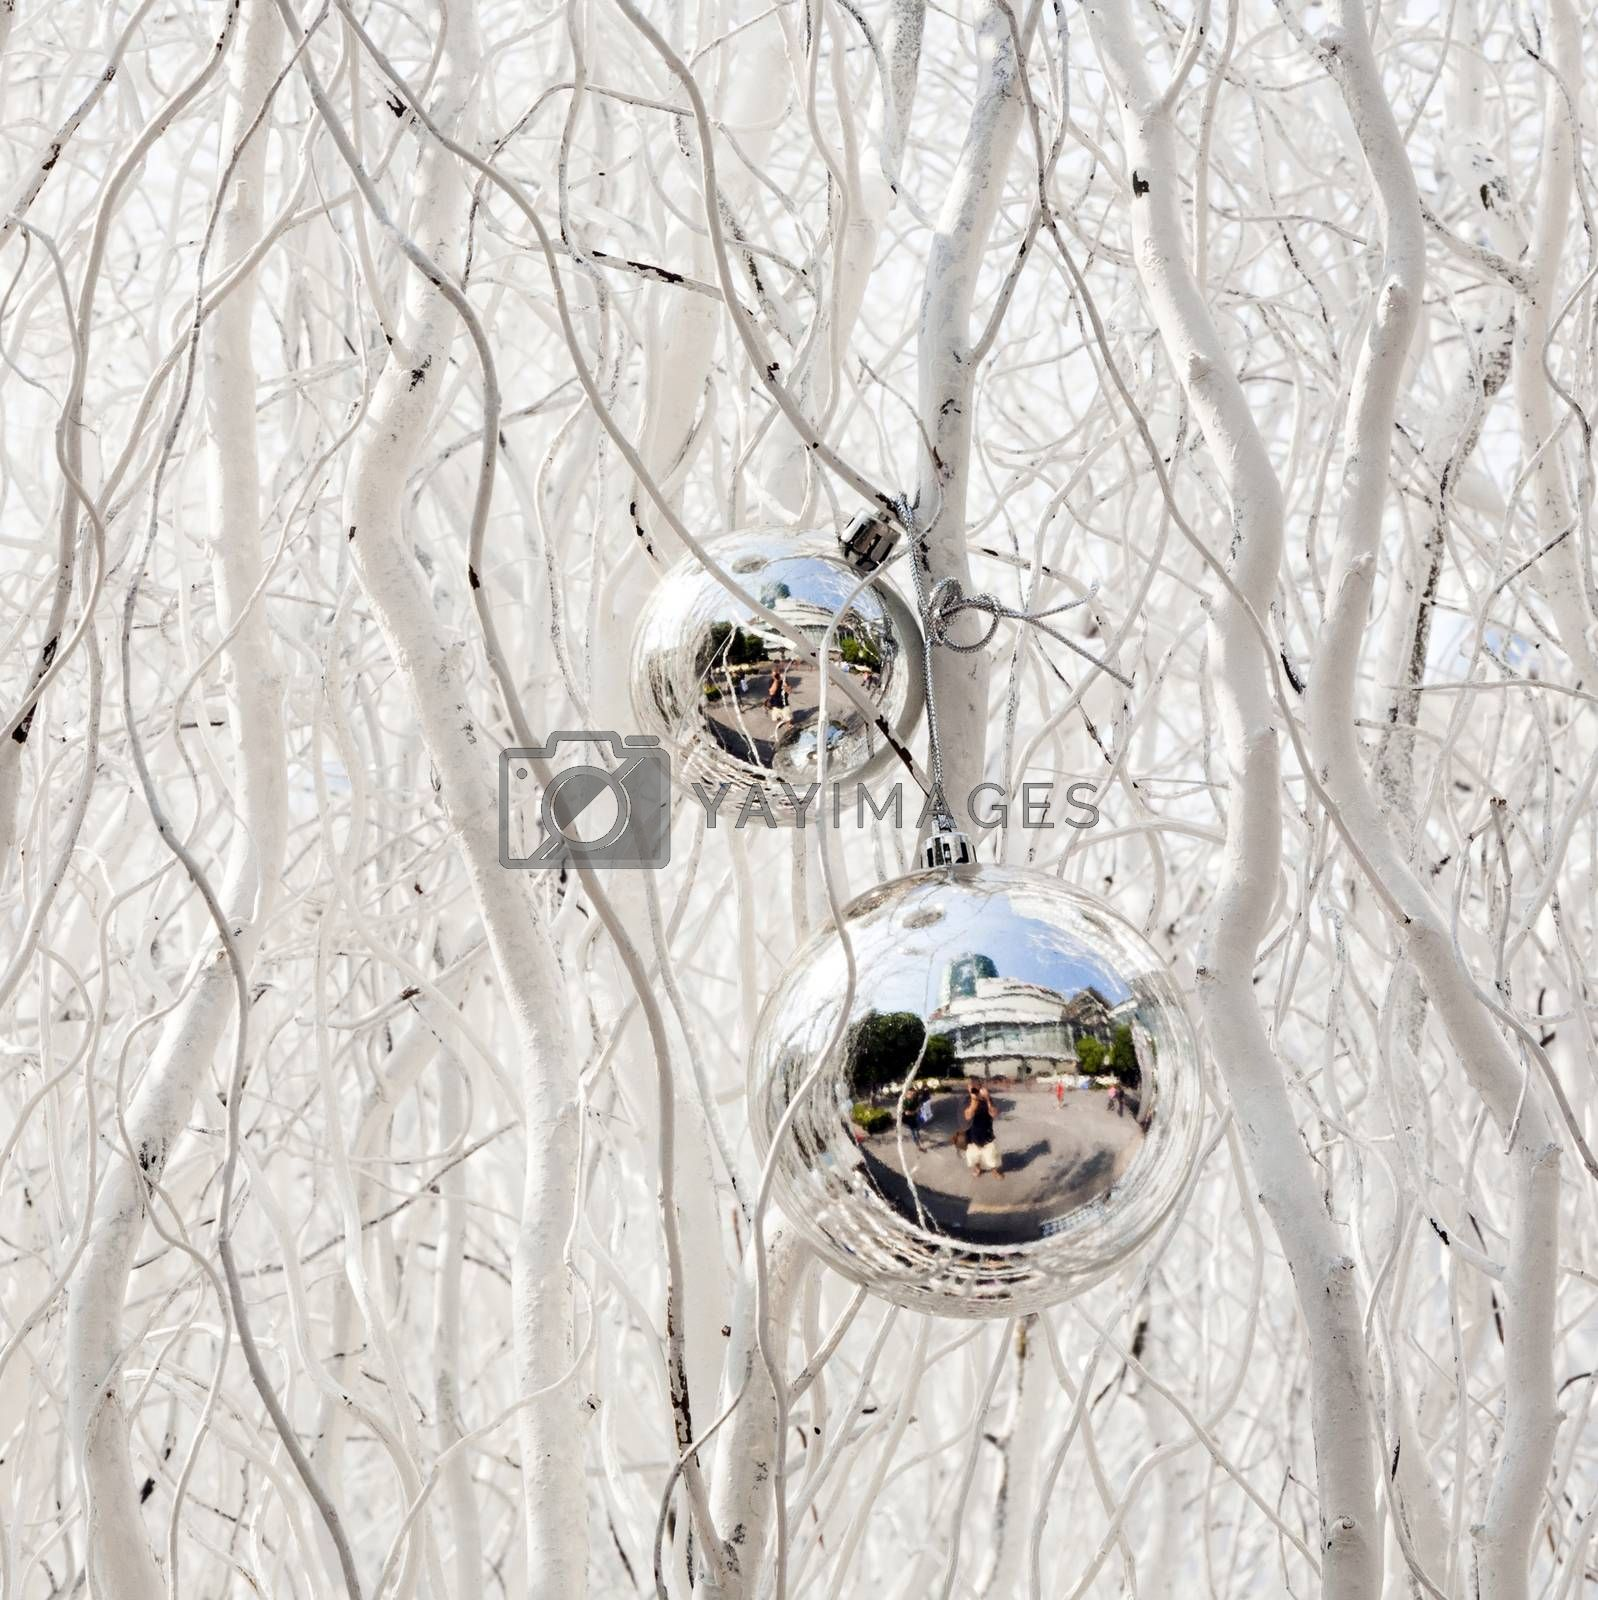 white painted branches give a harmonic background with chrismas tree balls and mirroring